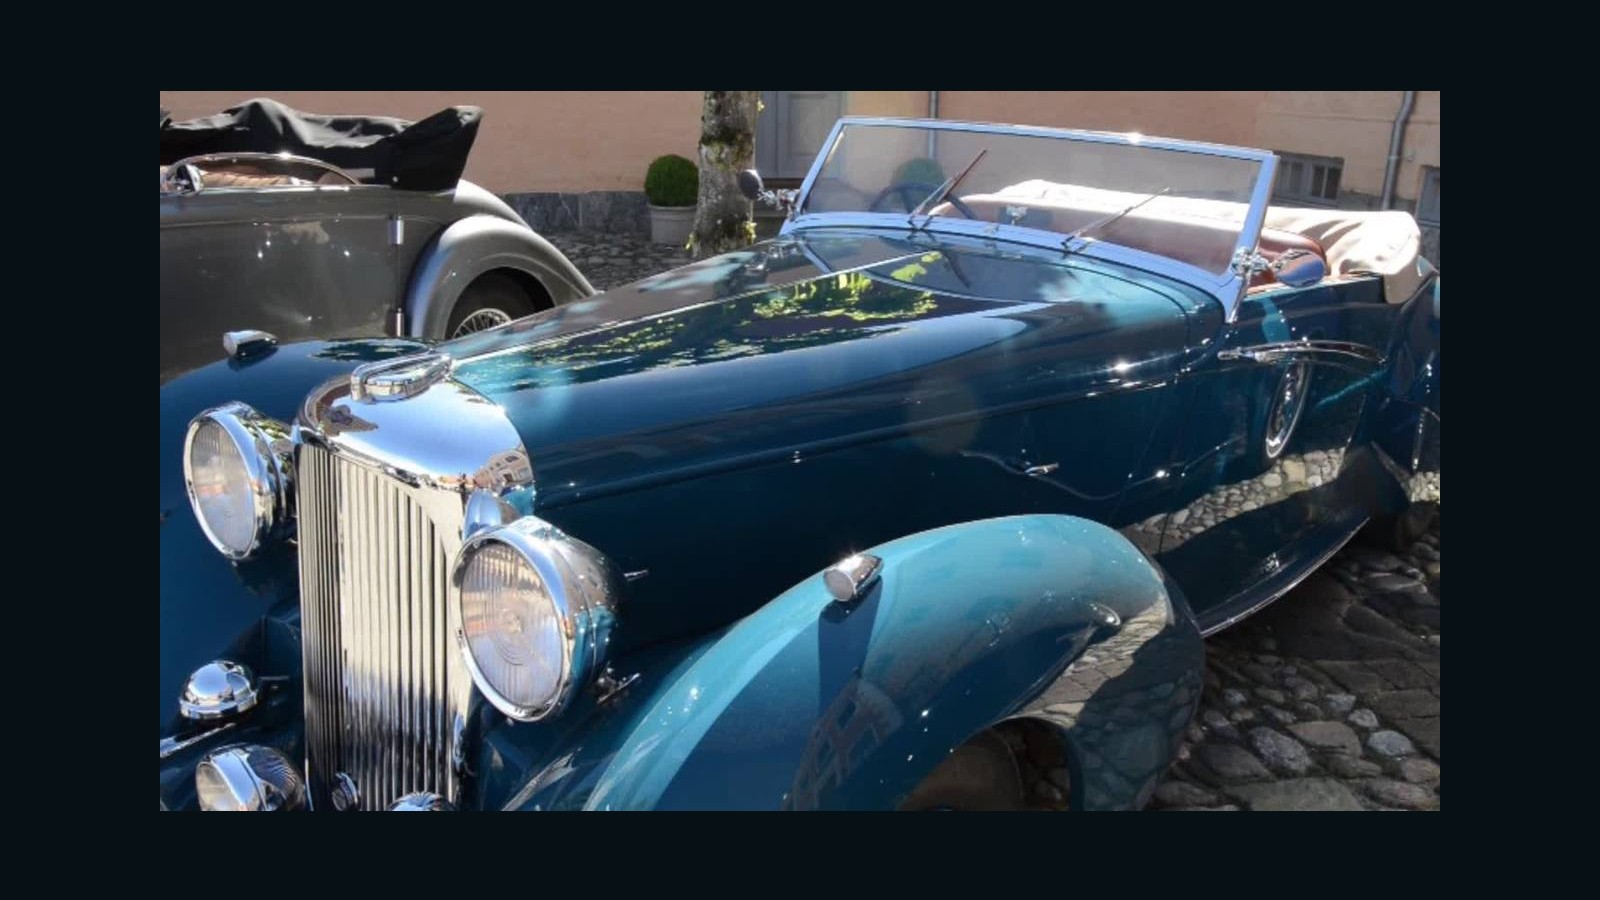 Millionaire puts beautiful car collection up for sale - CNN Video